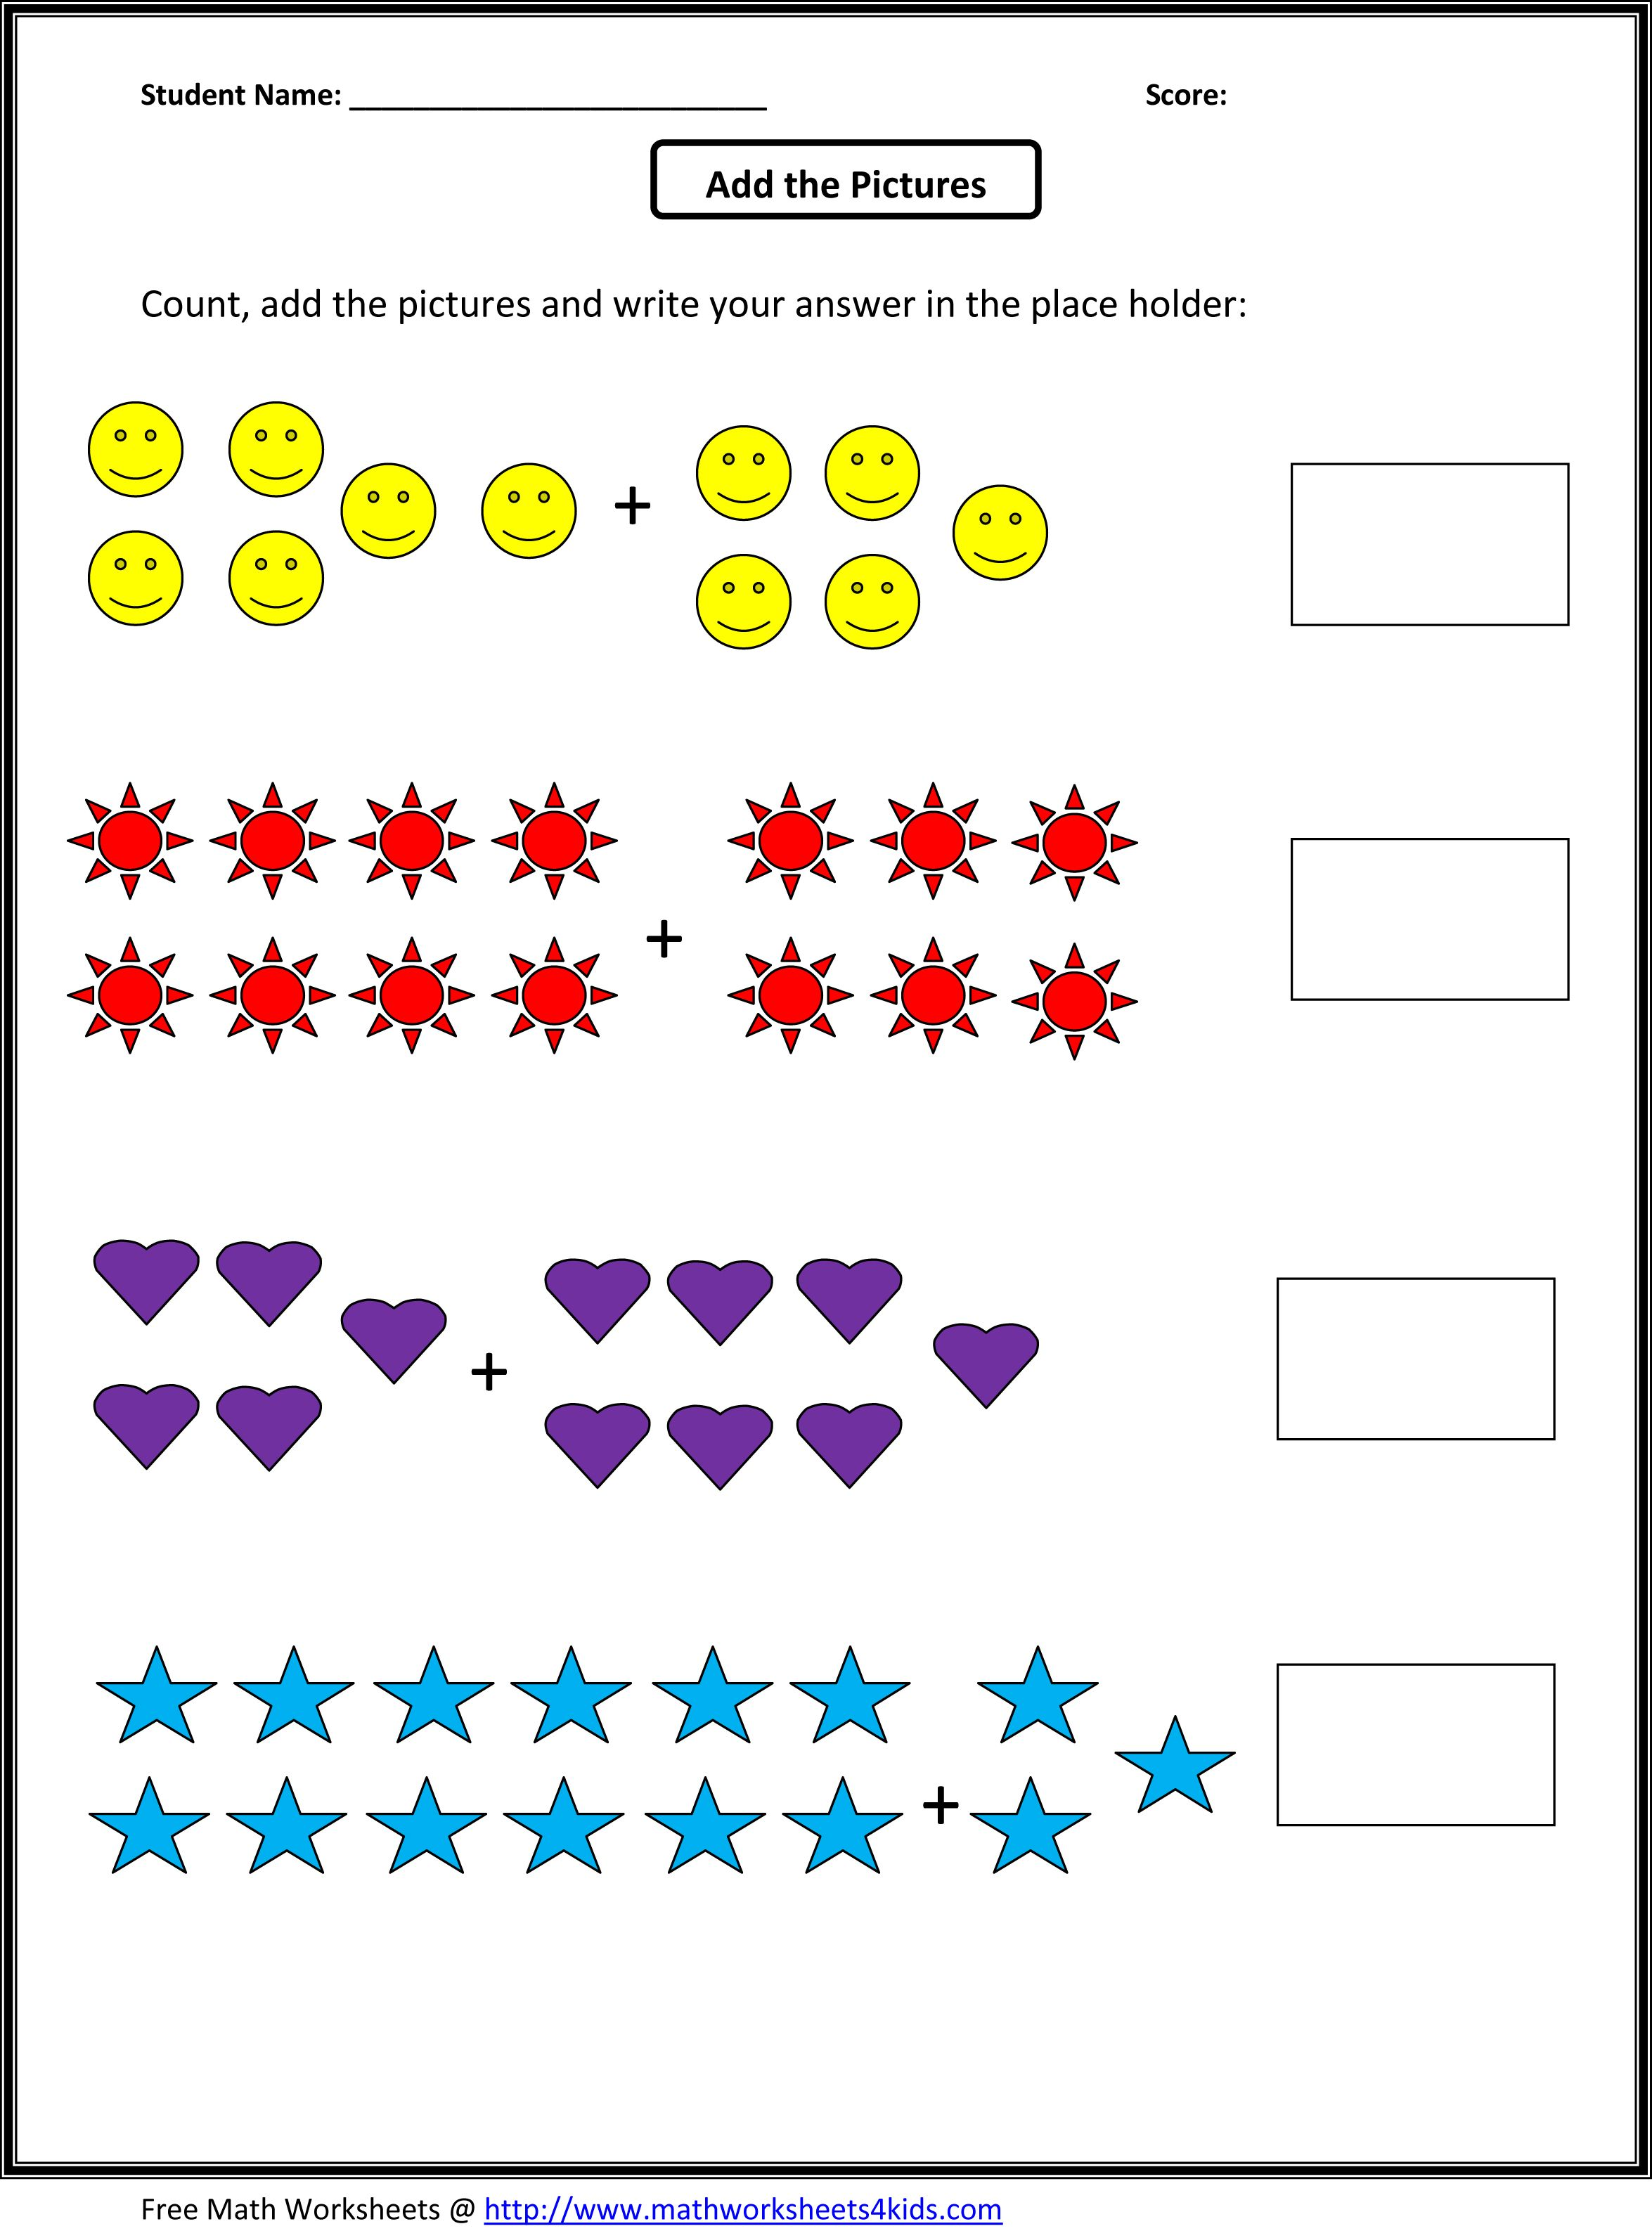 Uncategorized Worksheet For Grade 1 Maths grade 1 addition math worksheets first worksheets